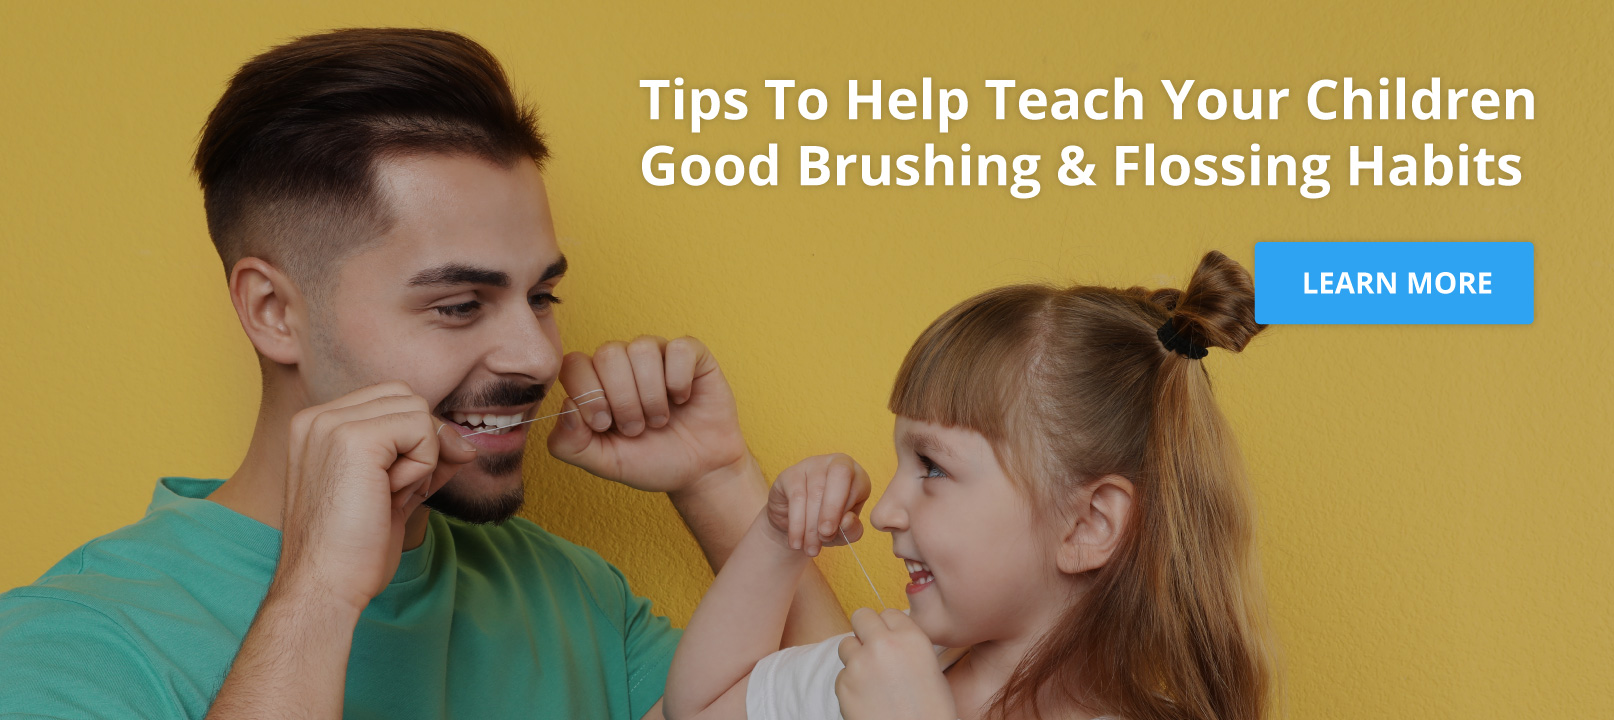 Tips To Help Teach Your Children Good Brushing & Flossing Habits.